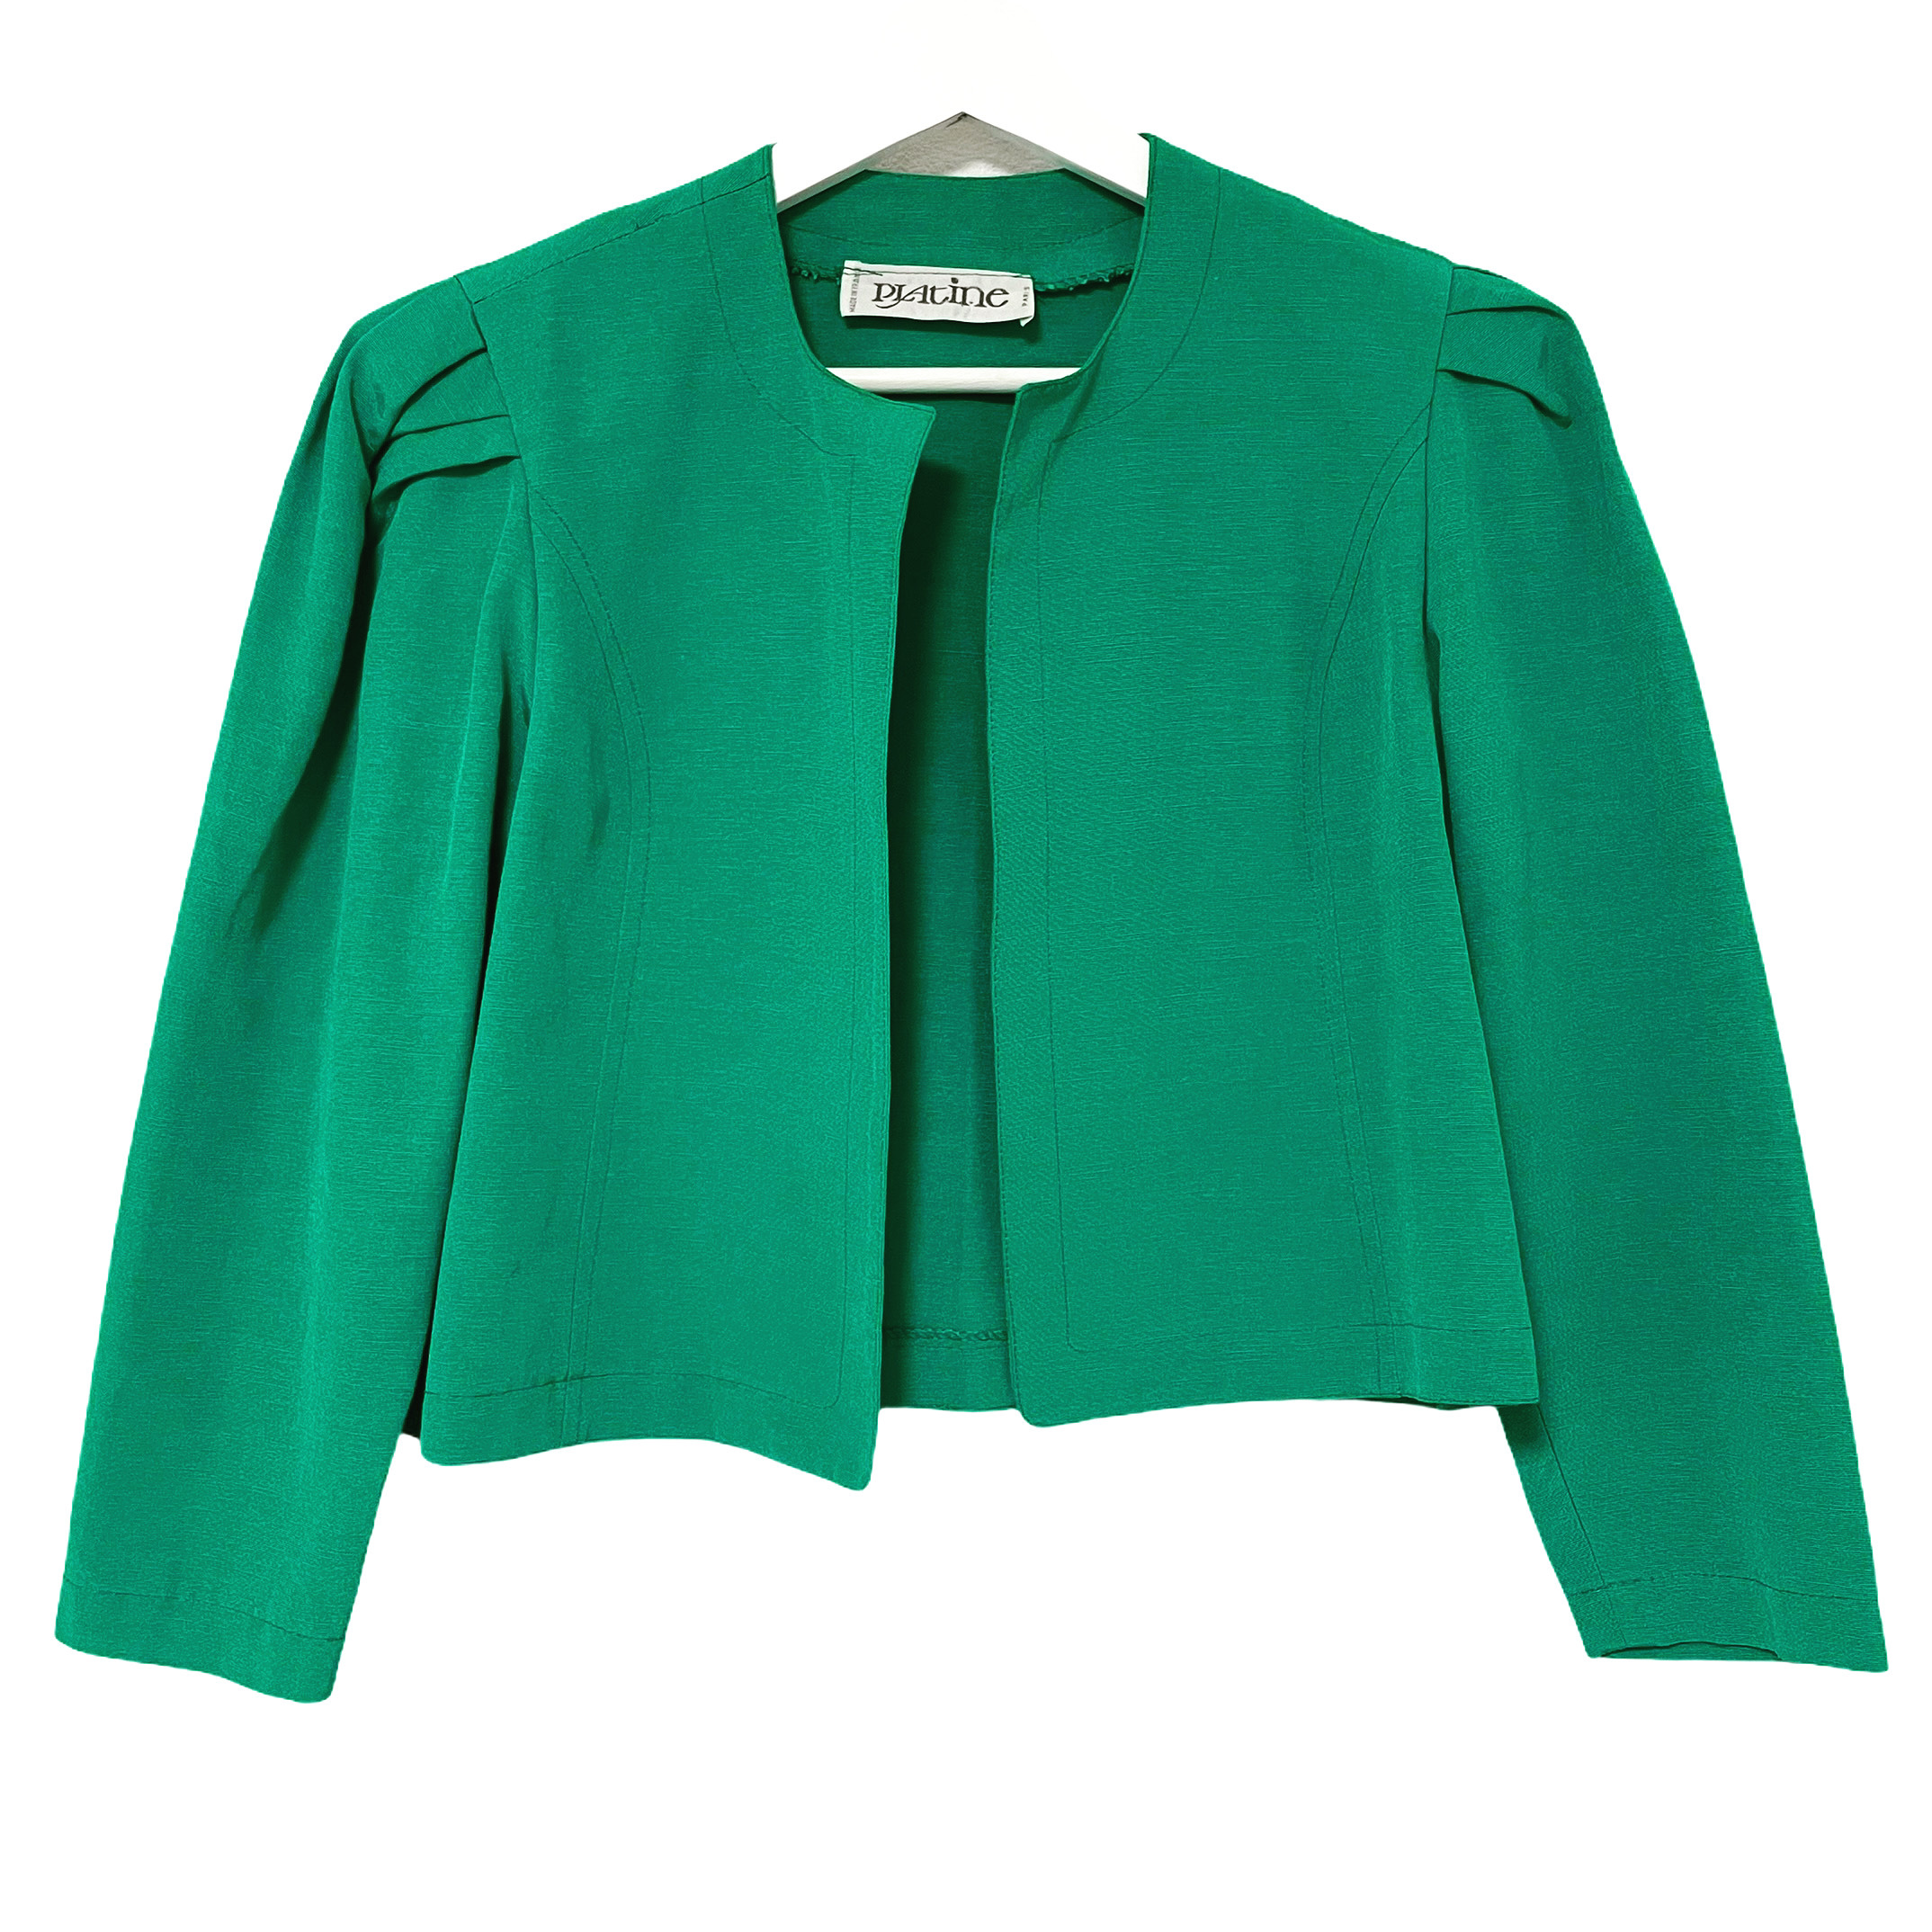 80's PLAtine Green Short Jacket made in France